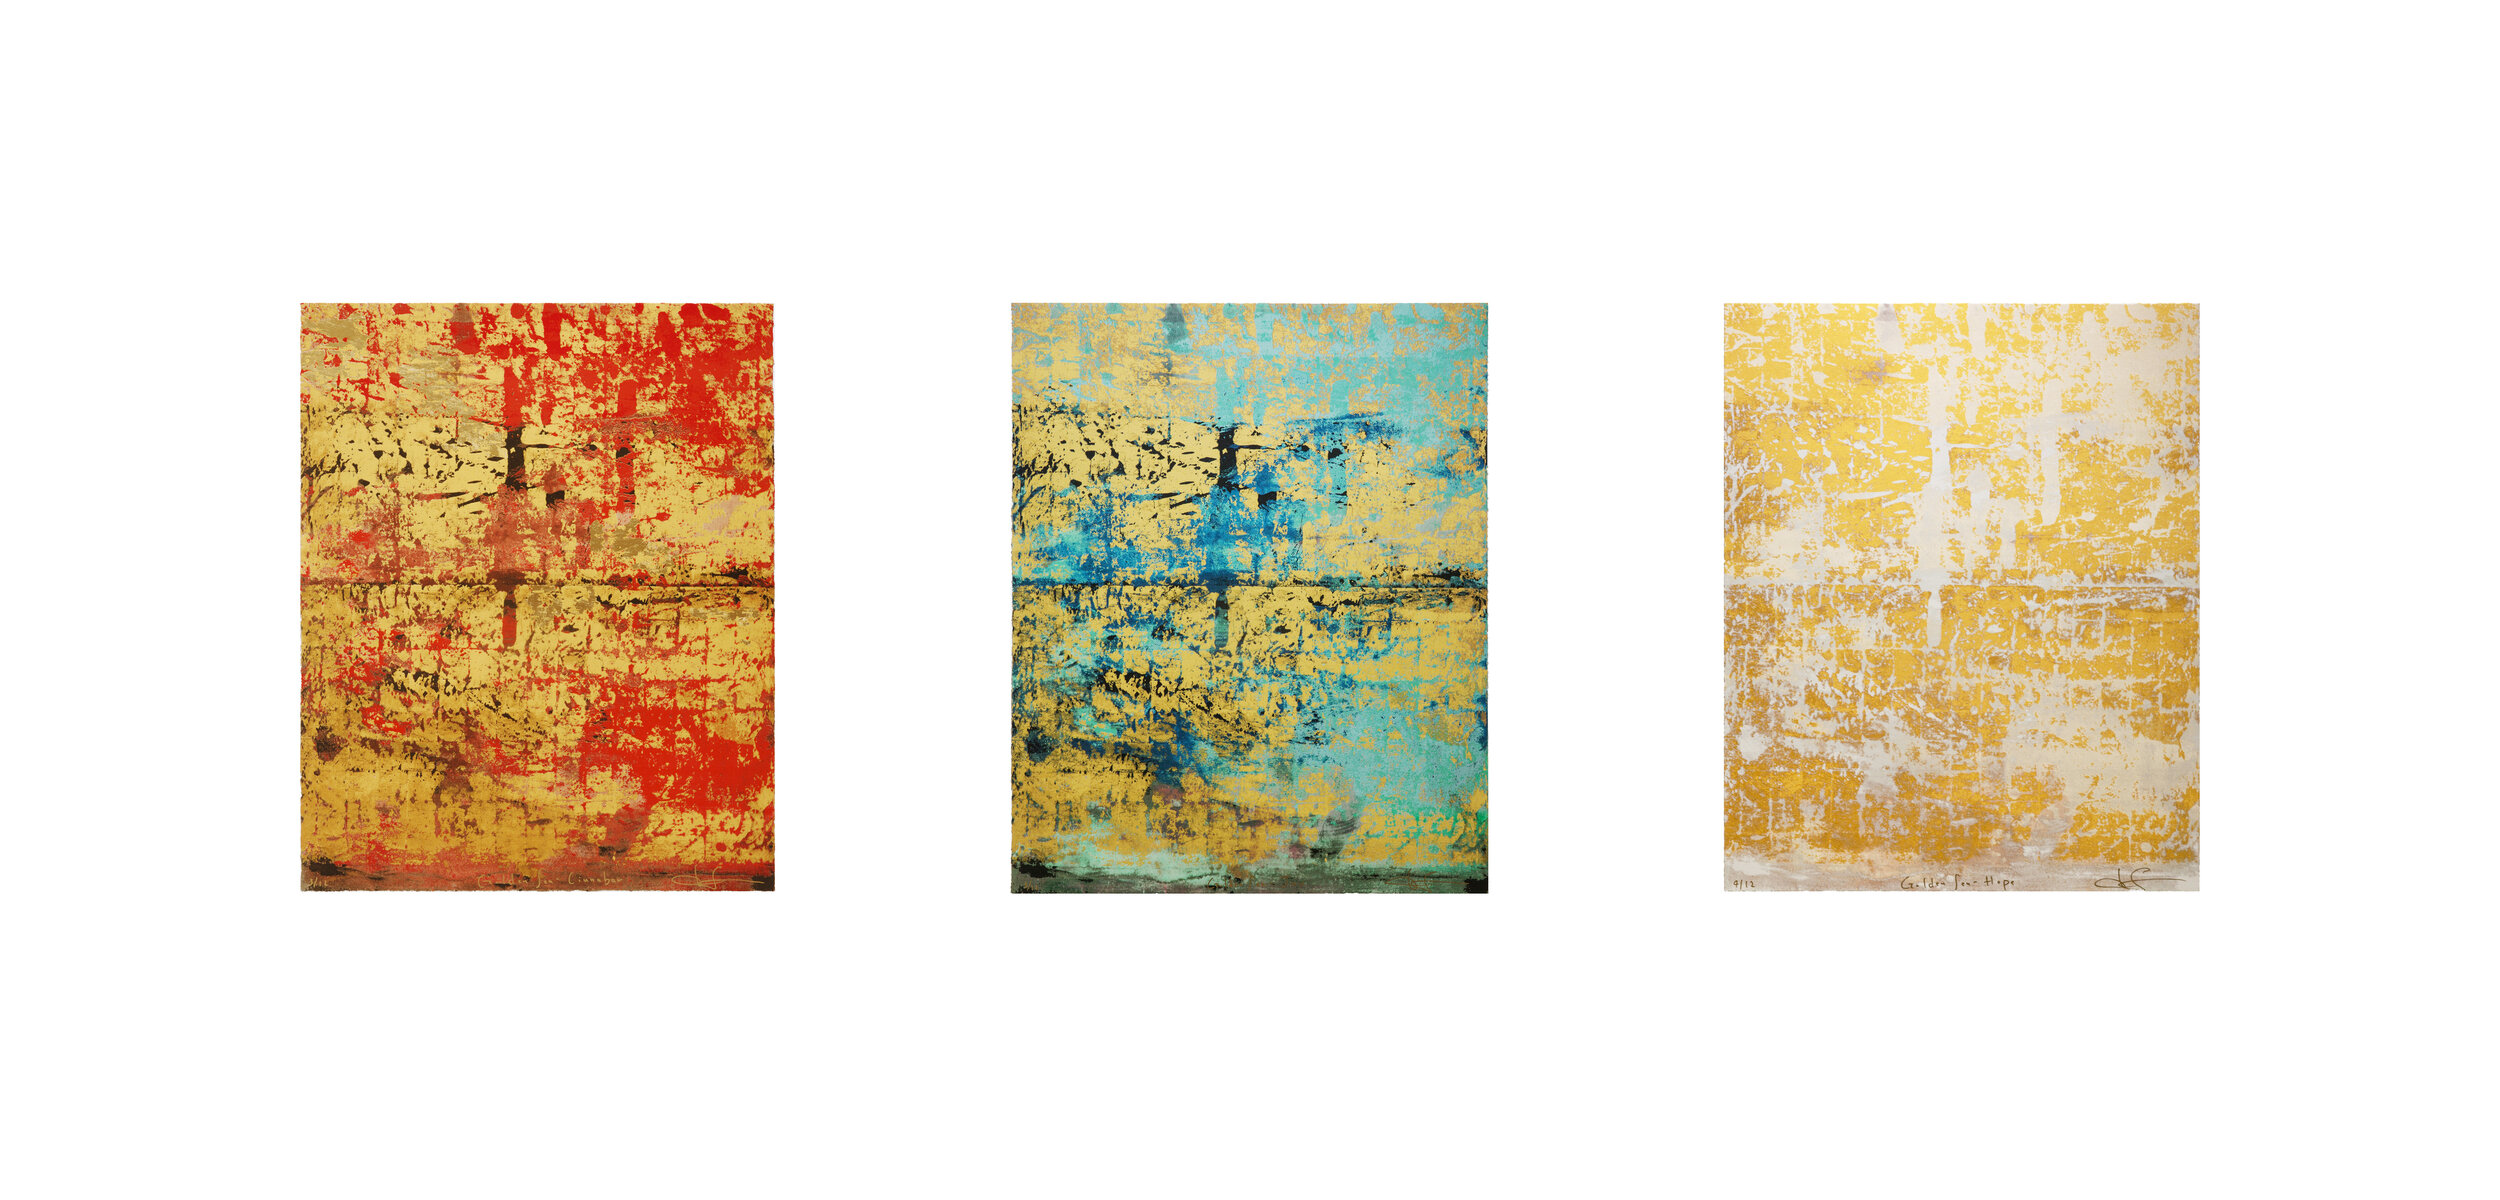 """My new series of museum quality silkscreen prints will be produced in collaboration with master printer, Gary Lichtenstein, at his studio inside Jersey City's spectacular Mana Contemporary. The limited edition prints of """"Golden Sea"""", """"Walking on Water - Banquo's Dream"""" and """"Charis-Kairos (The Tears of Christ)"""" use the original paintings as a road map to create a brand new series of works. The authen- tic practice of silkscreen is still done entirely by hand and these unique prints will also feature applications of gold leaf, gold pow- der, iridescence and diamond dust. I have admired Gary's work for some time, notably the editions produced with artists including Marina Abramovic, Robert Indiana, Alfred Leslie and James Prosek. I was delighted to be introduced by Kate Shin of Waterfall Mansion Gallery and I look forward to the new creations.   By Makoto Fujimura"""